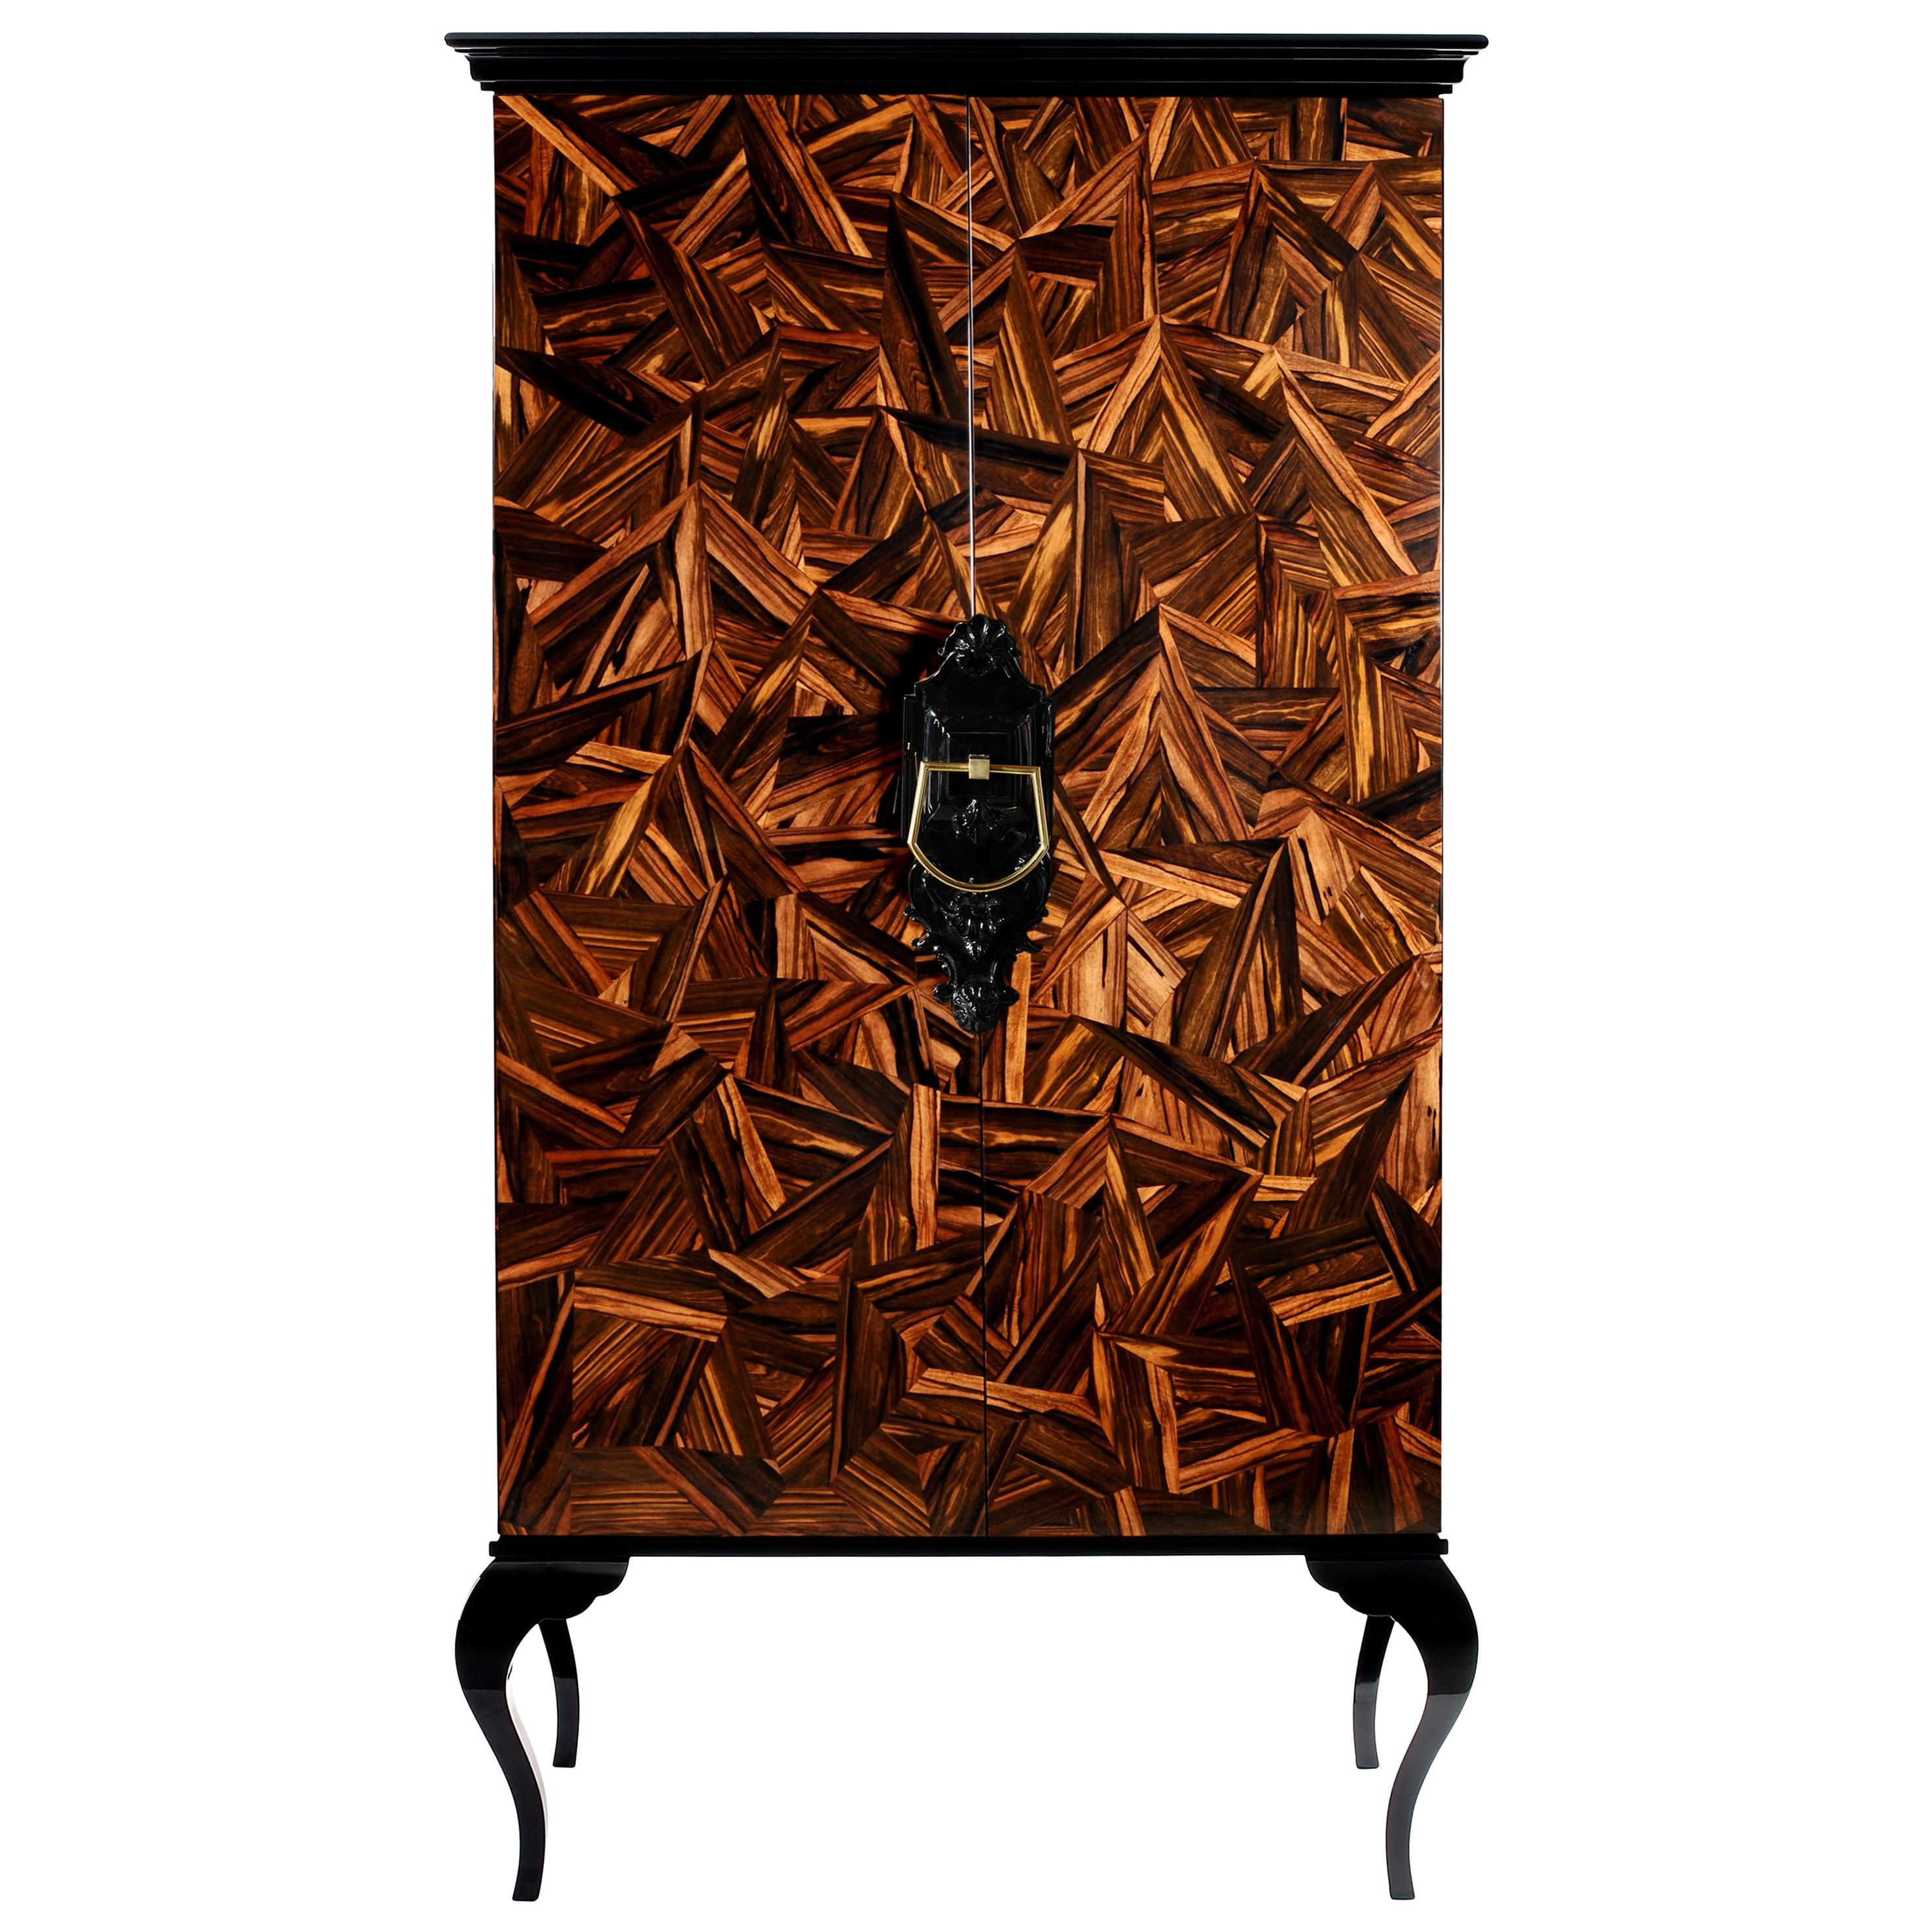 Guggenheim Cabinet Patch in Lacquered Wood